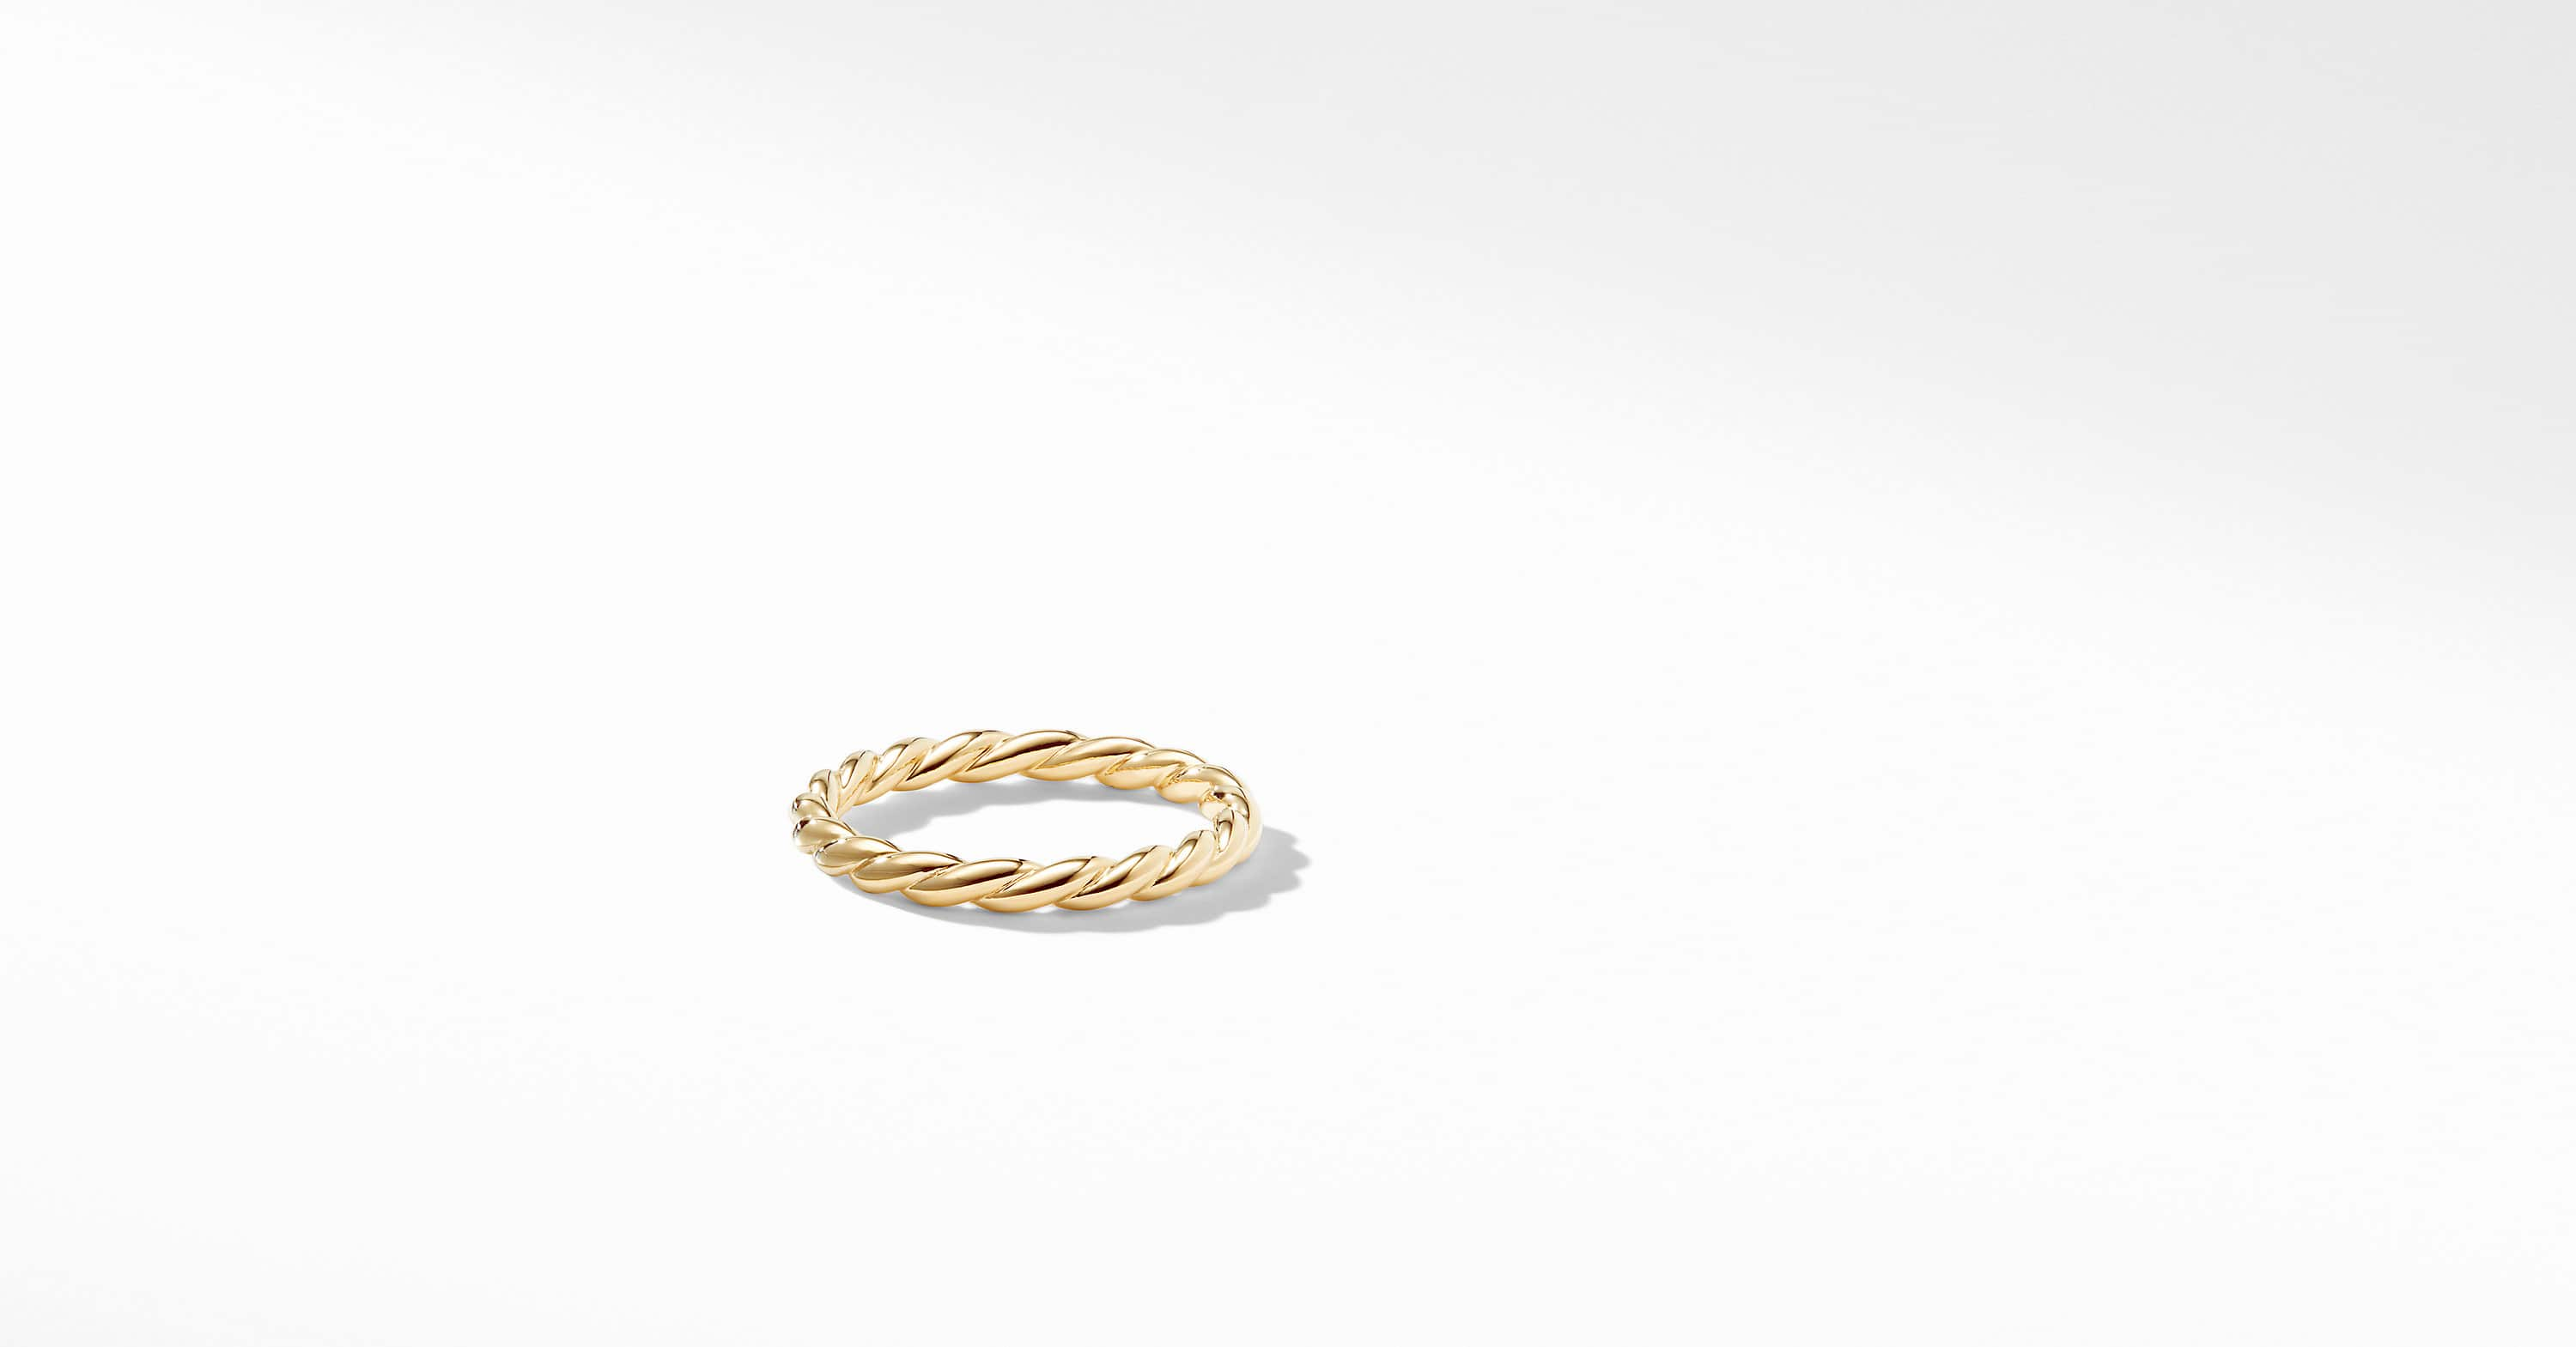 Bague Paveflex en or 18K